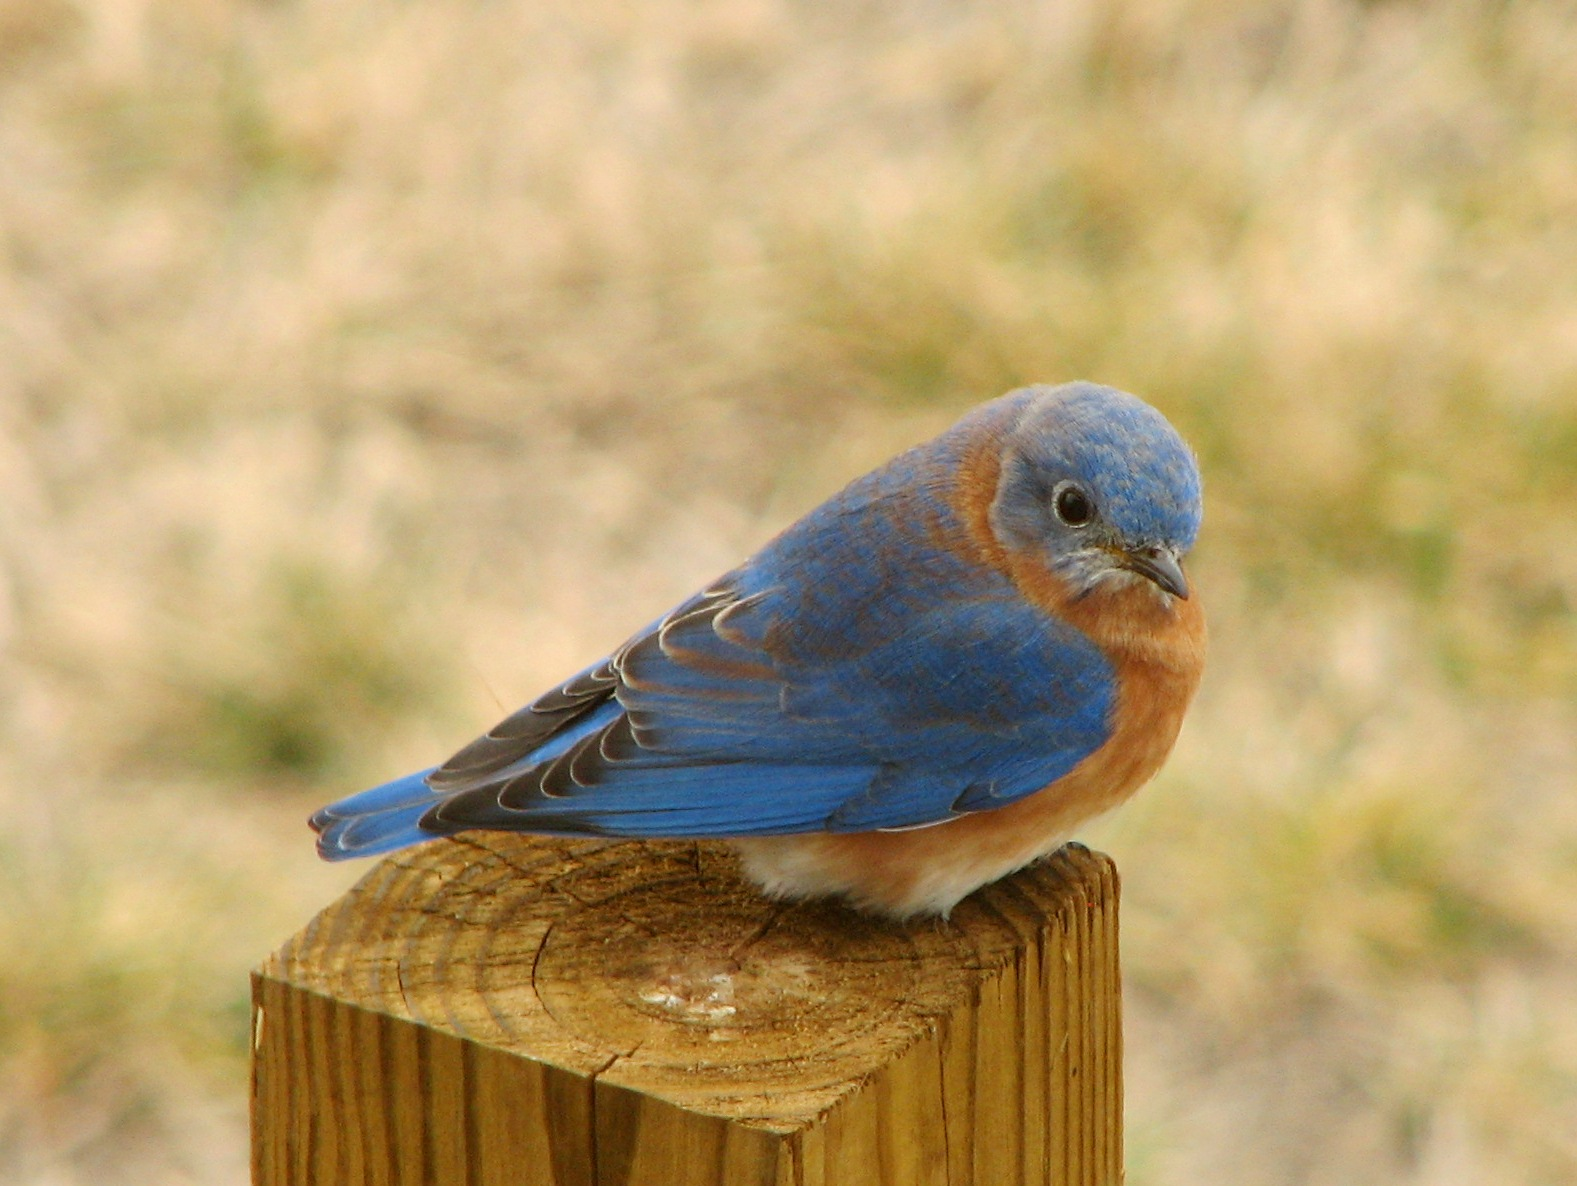 File:Eastern Bluebird.jpg